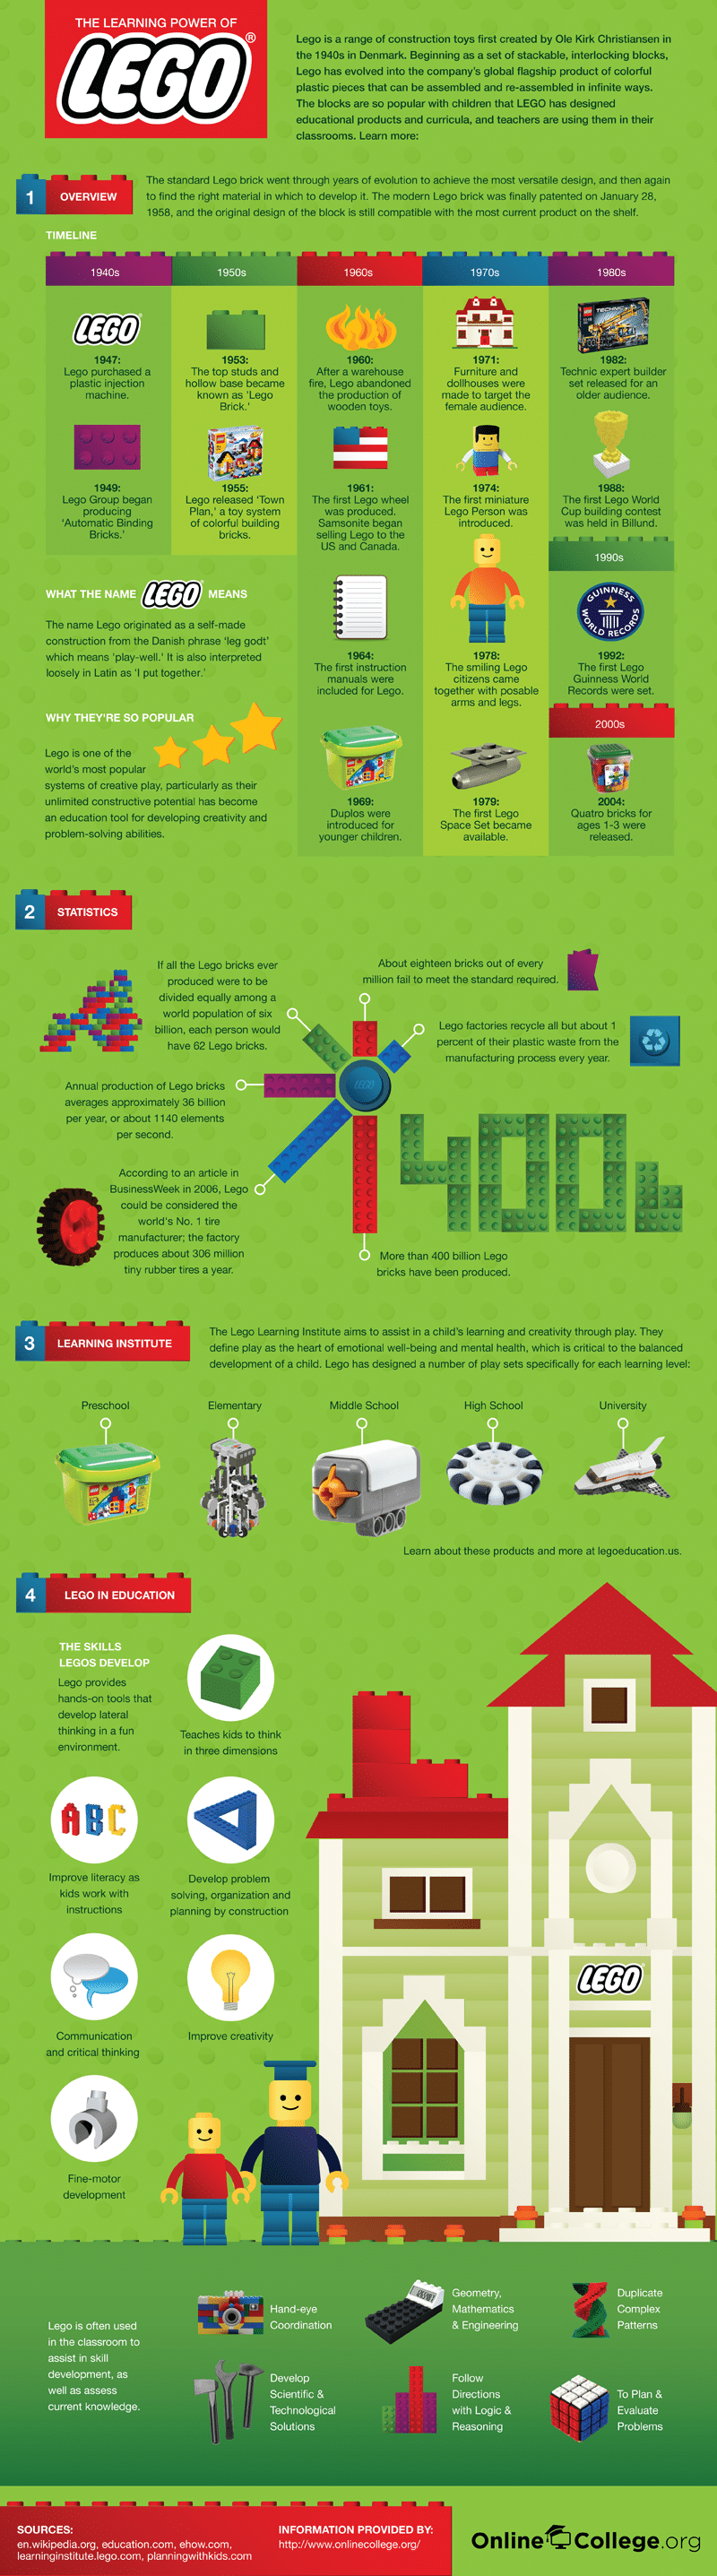 The Learning Power Of Lego [Infographic]